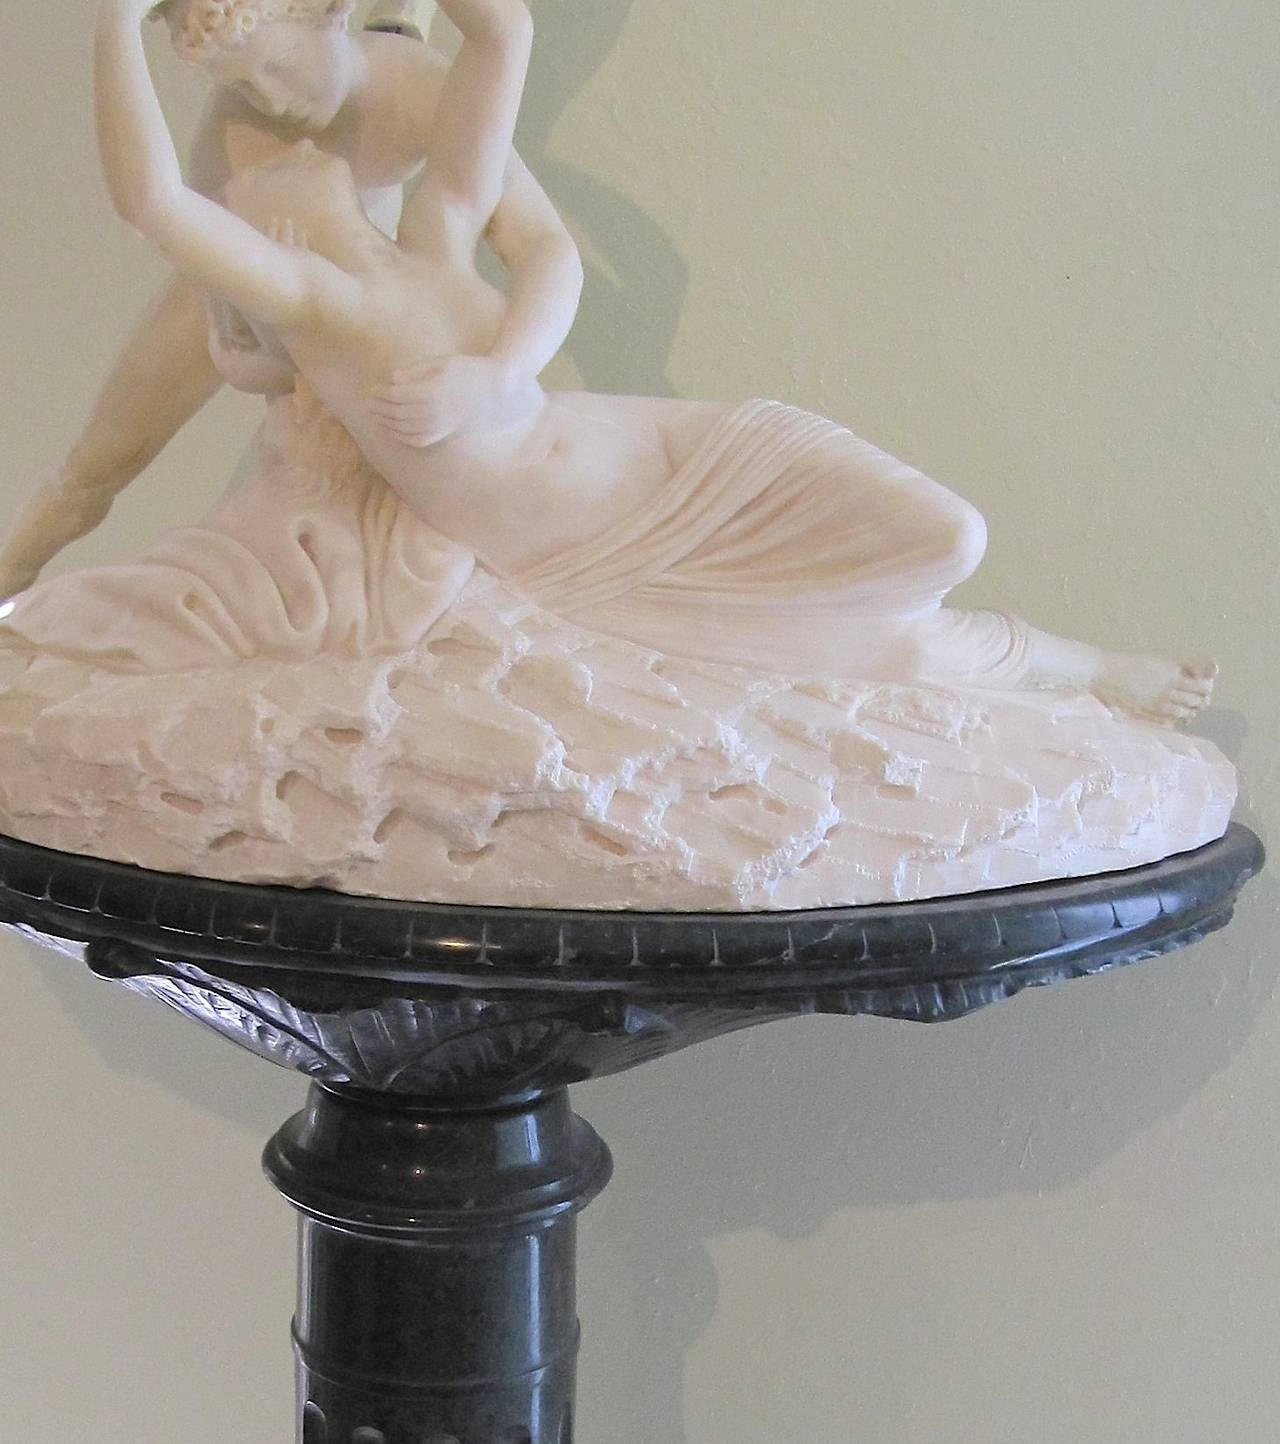 19th Century Palatial Marble Sculpture By Barzanti.  'Cupid's Kiss' on Marble Pedestal For Sale